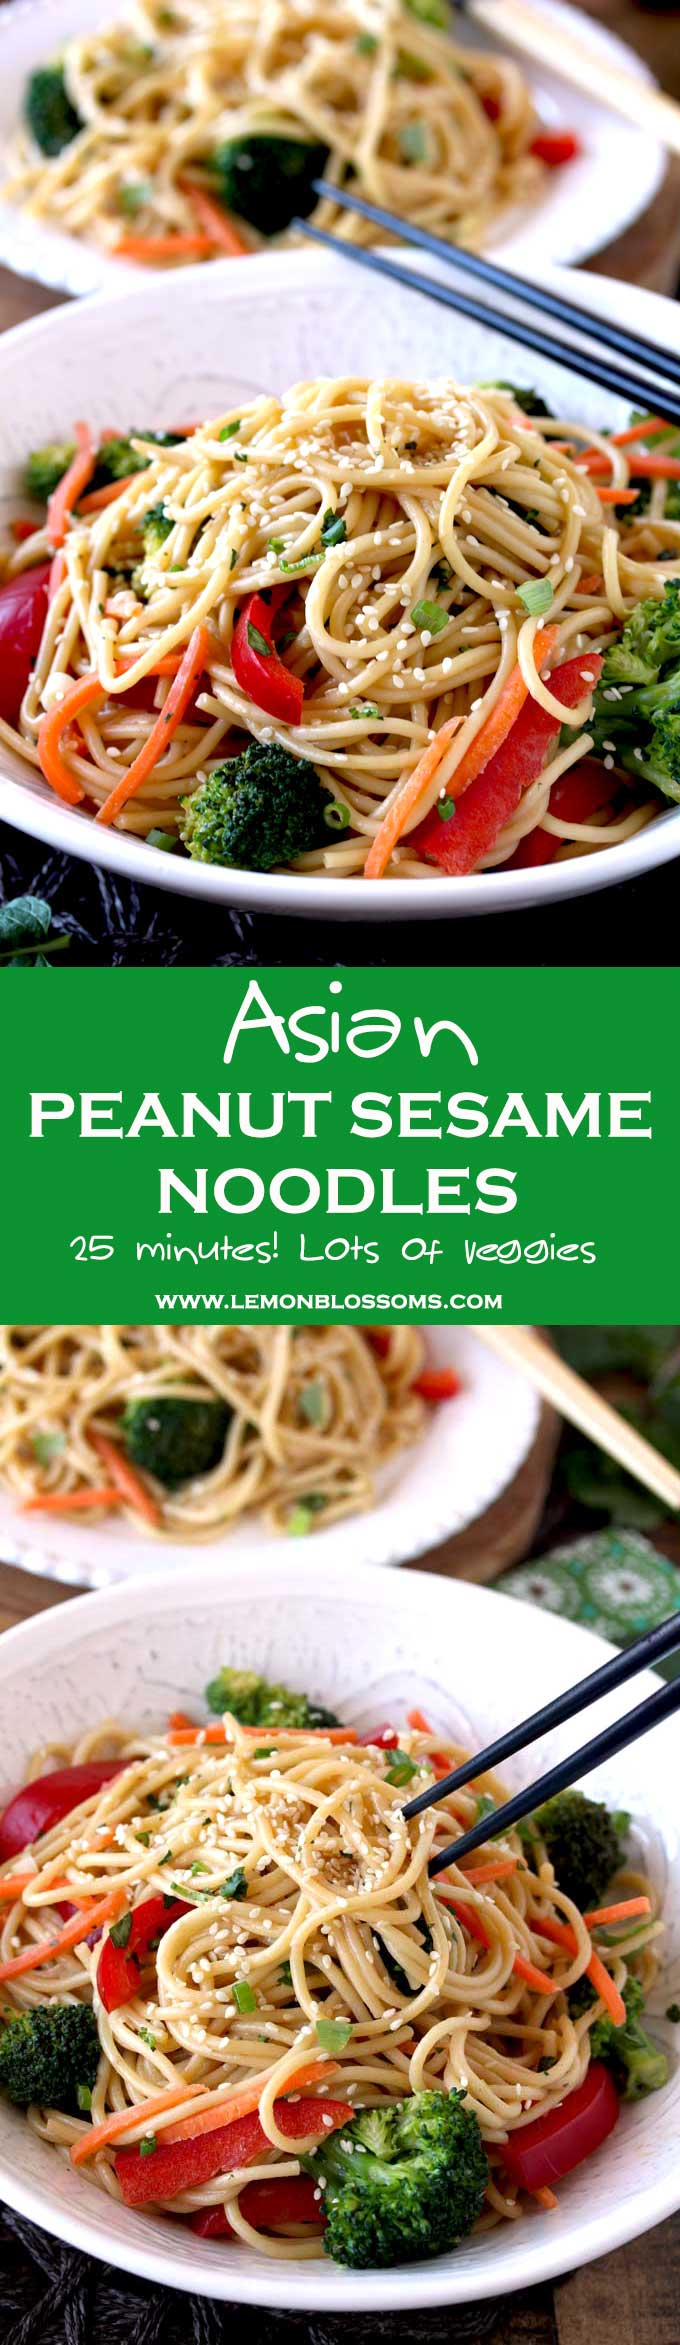 These quick and easy Asian Peanut Sesame Noodles are made in 25 minutes! Noodles, veggies and fresh herbs are tossed in the most delicious and creamy peanut sesame dressing. Perfect served hot, at room temperature or cold. Definitely a meal you will make over and over again! #Asian #Noodles #Sesame #easy #quick